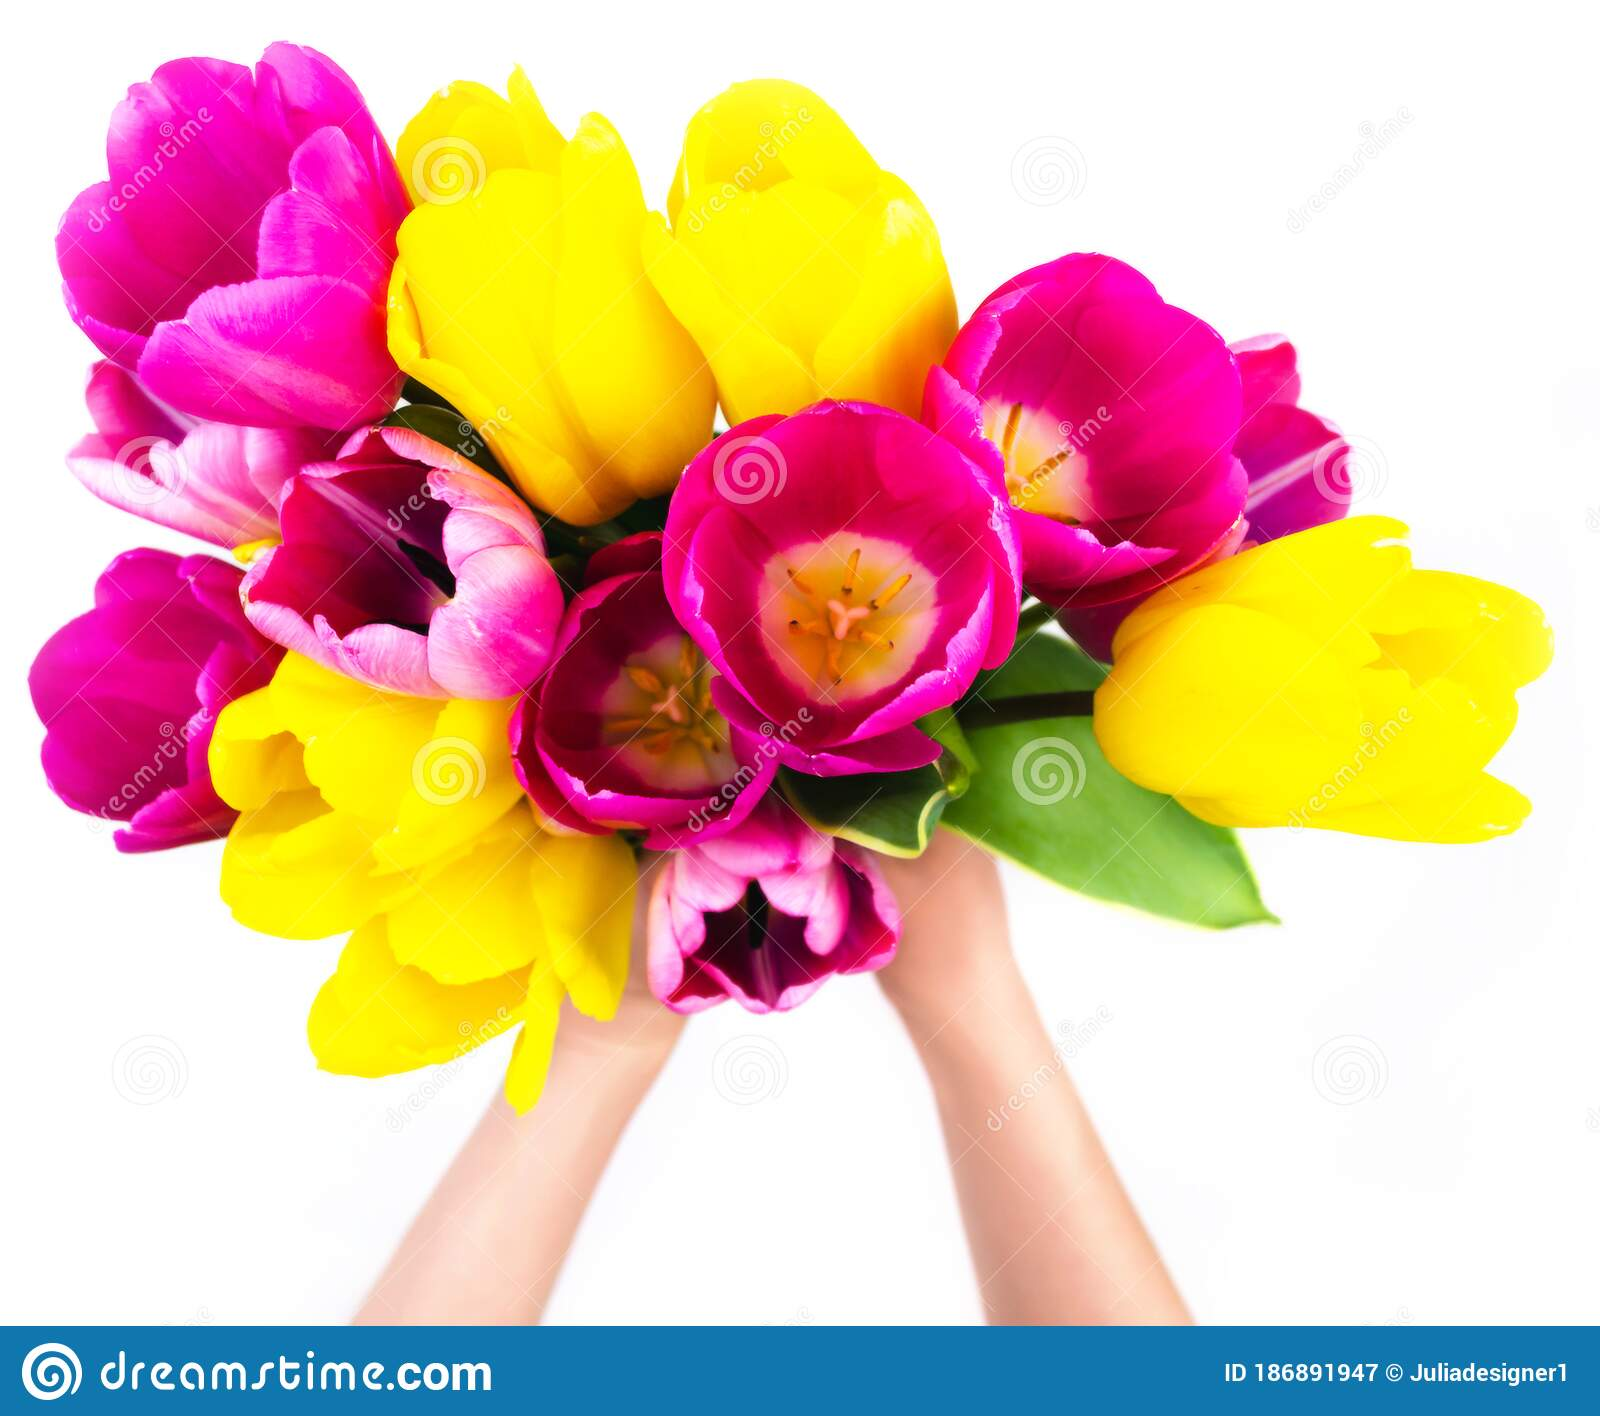 Birthday Clipart March Photos Free Royalty Free Stock Photos From Dreamstime